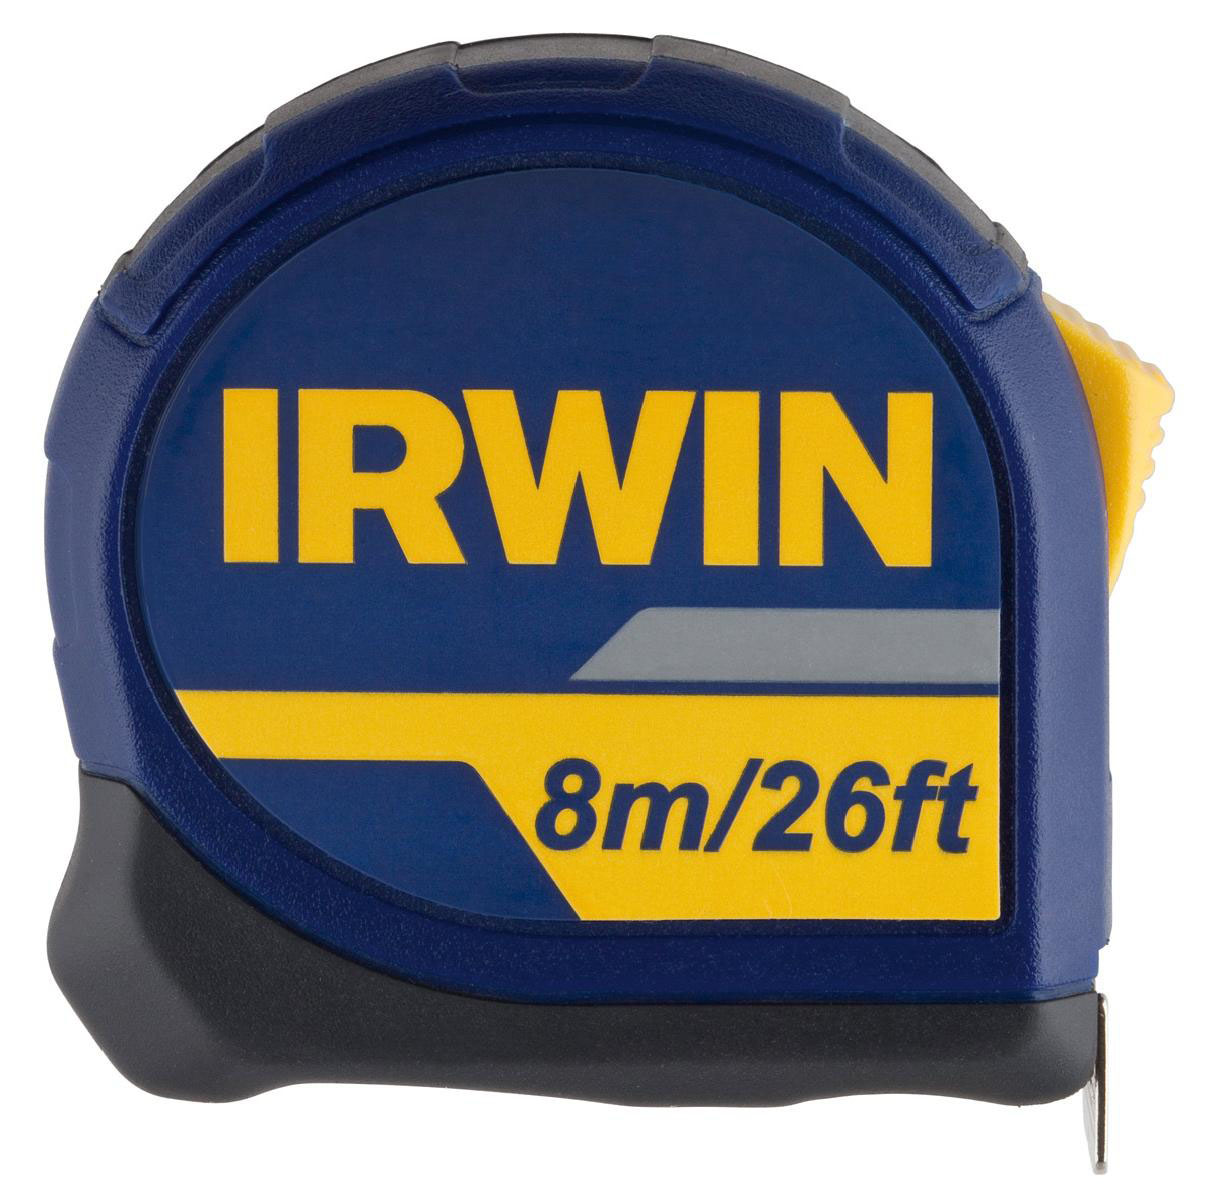 IRWIN 10507789 - Standard measuring tape 8m/26ft